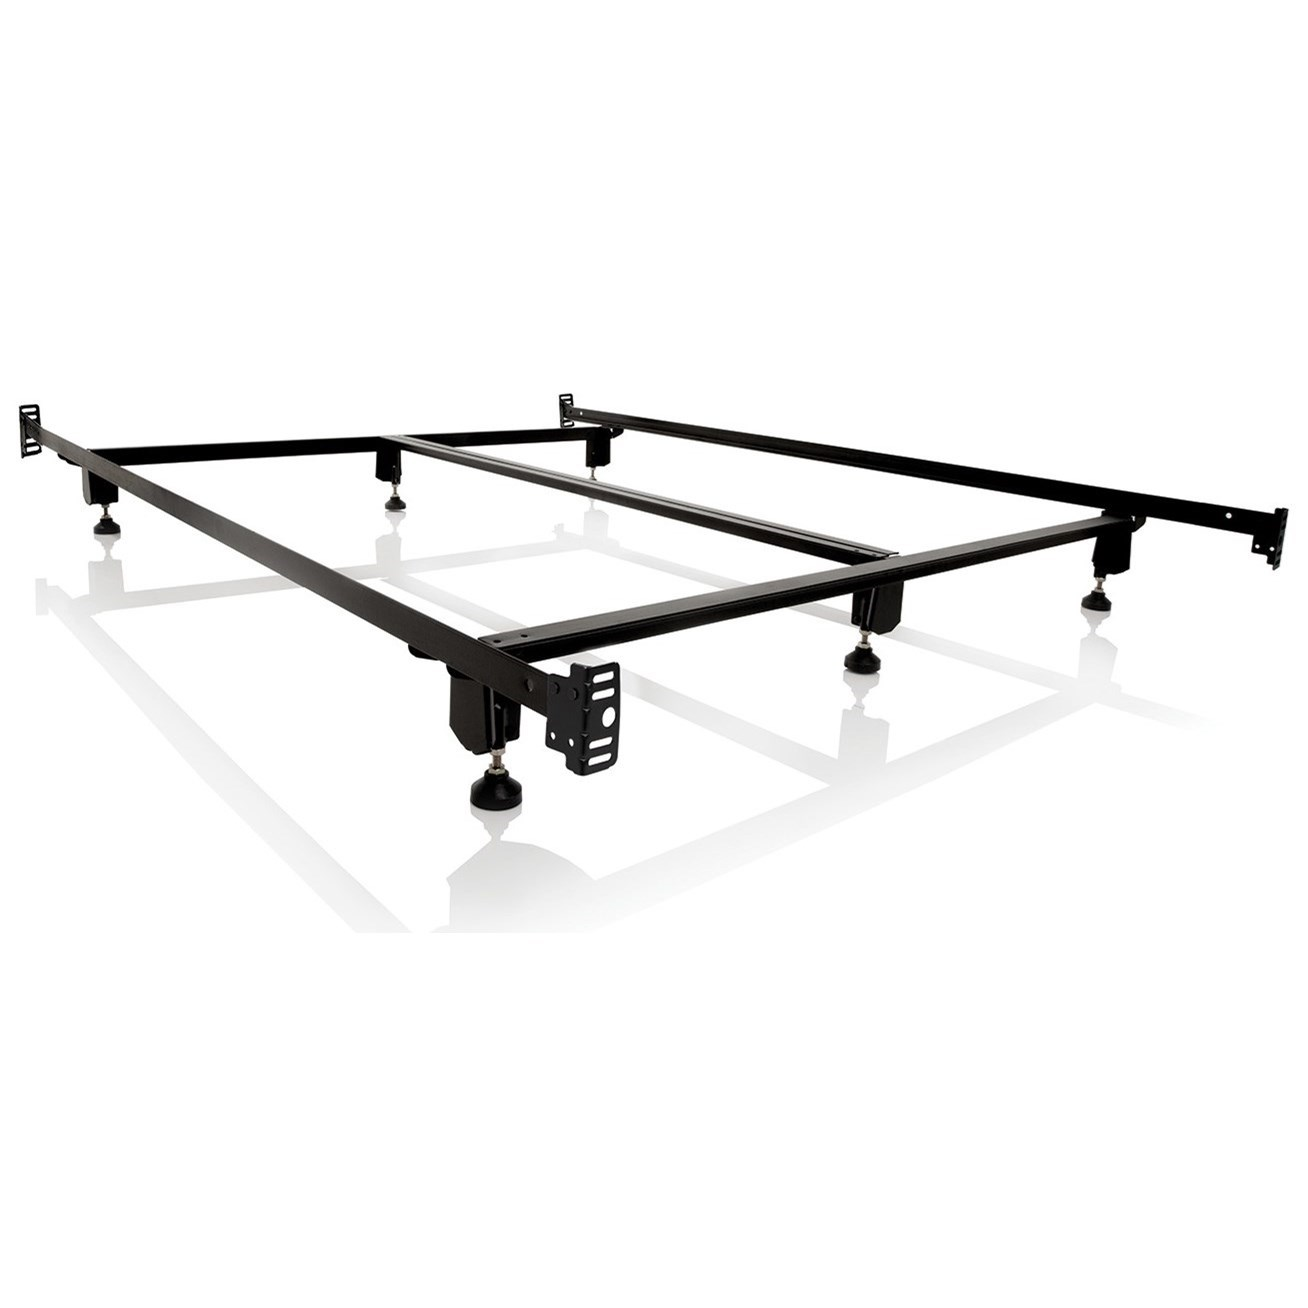 Malouf Steelock King Steelock Bolt-On Bed Frame - Item Number: STHFKKSL